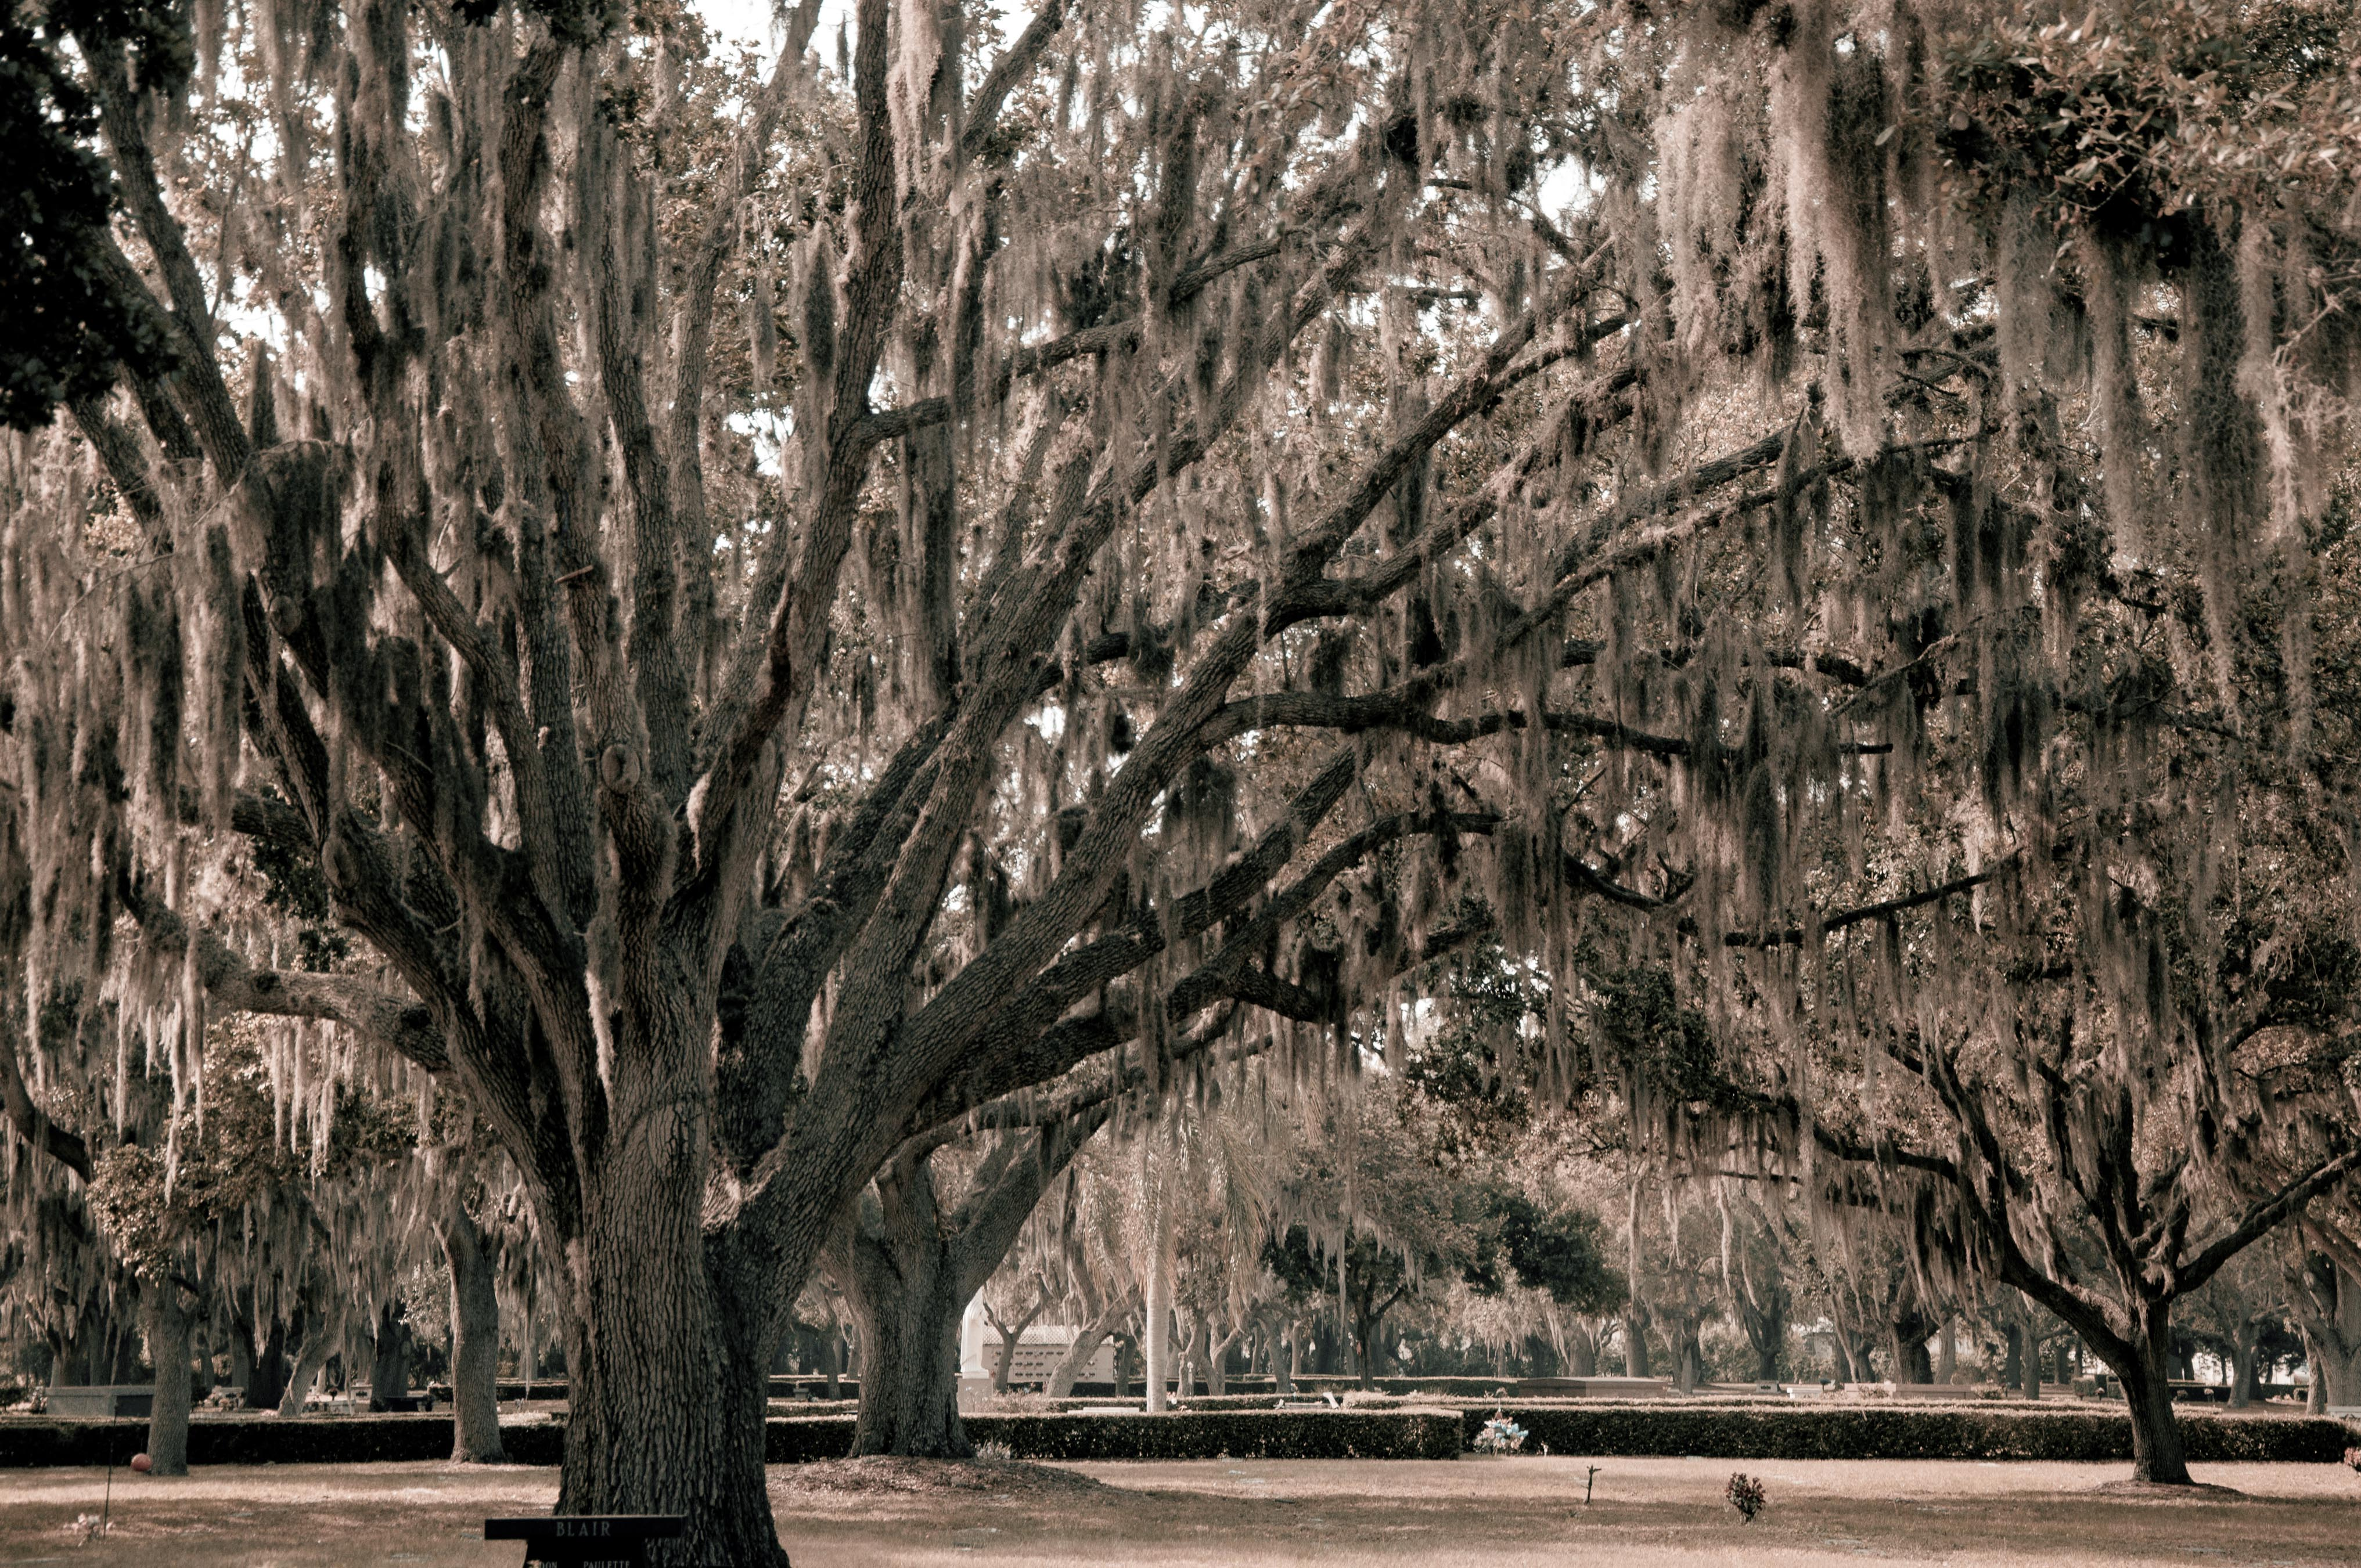 Mesmerized by Stunning, Spooky Spanish Moss Hanging from Ancient Trees